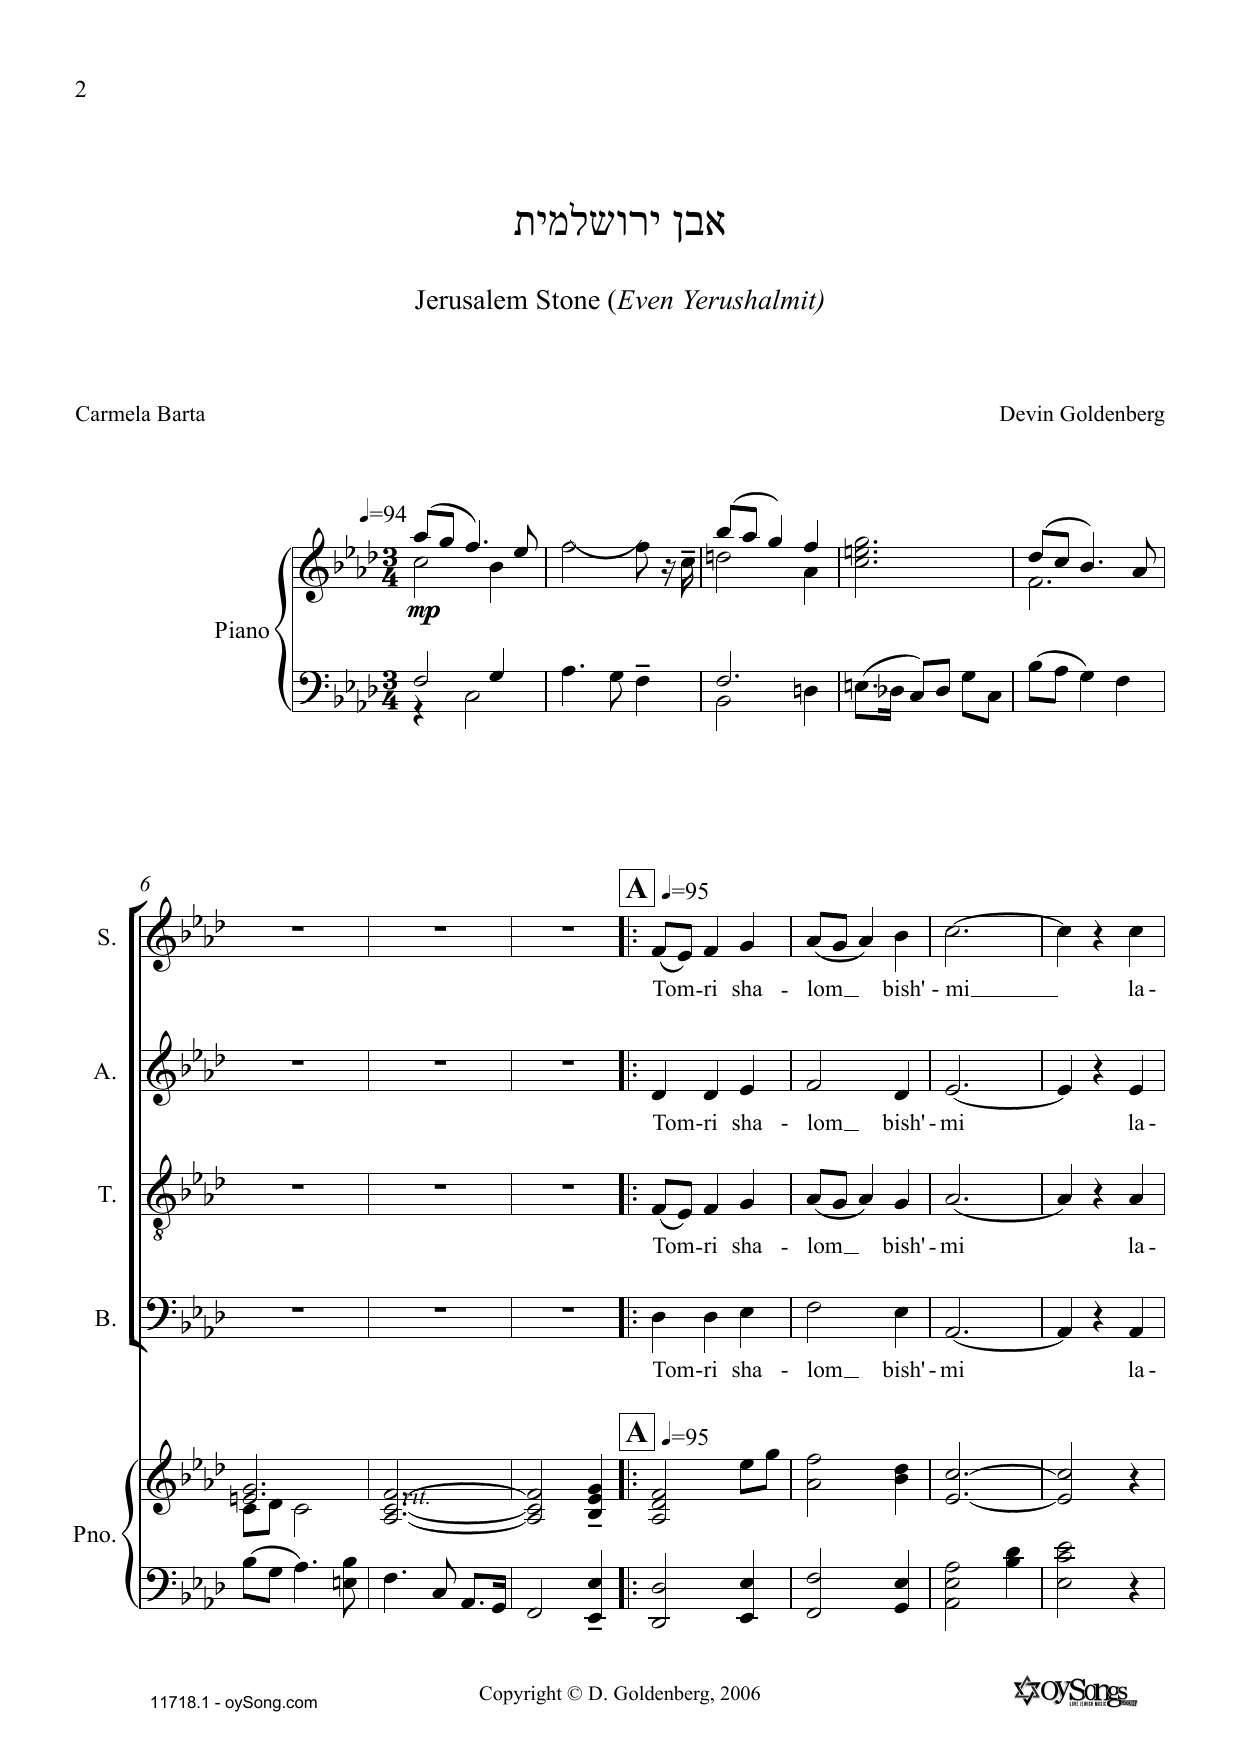 Devin Goldenberg Even Yerushalmit (Jerusalem Stone) sheet music notes and chords